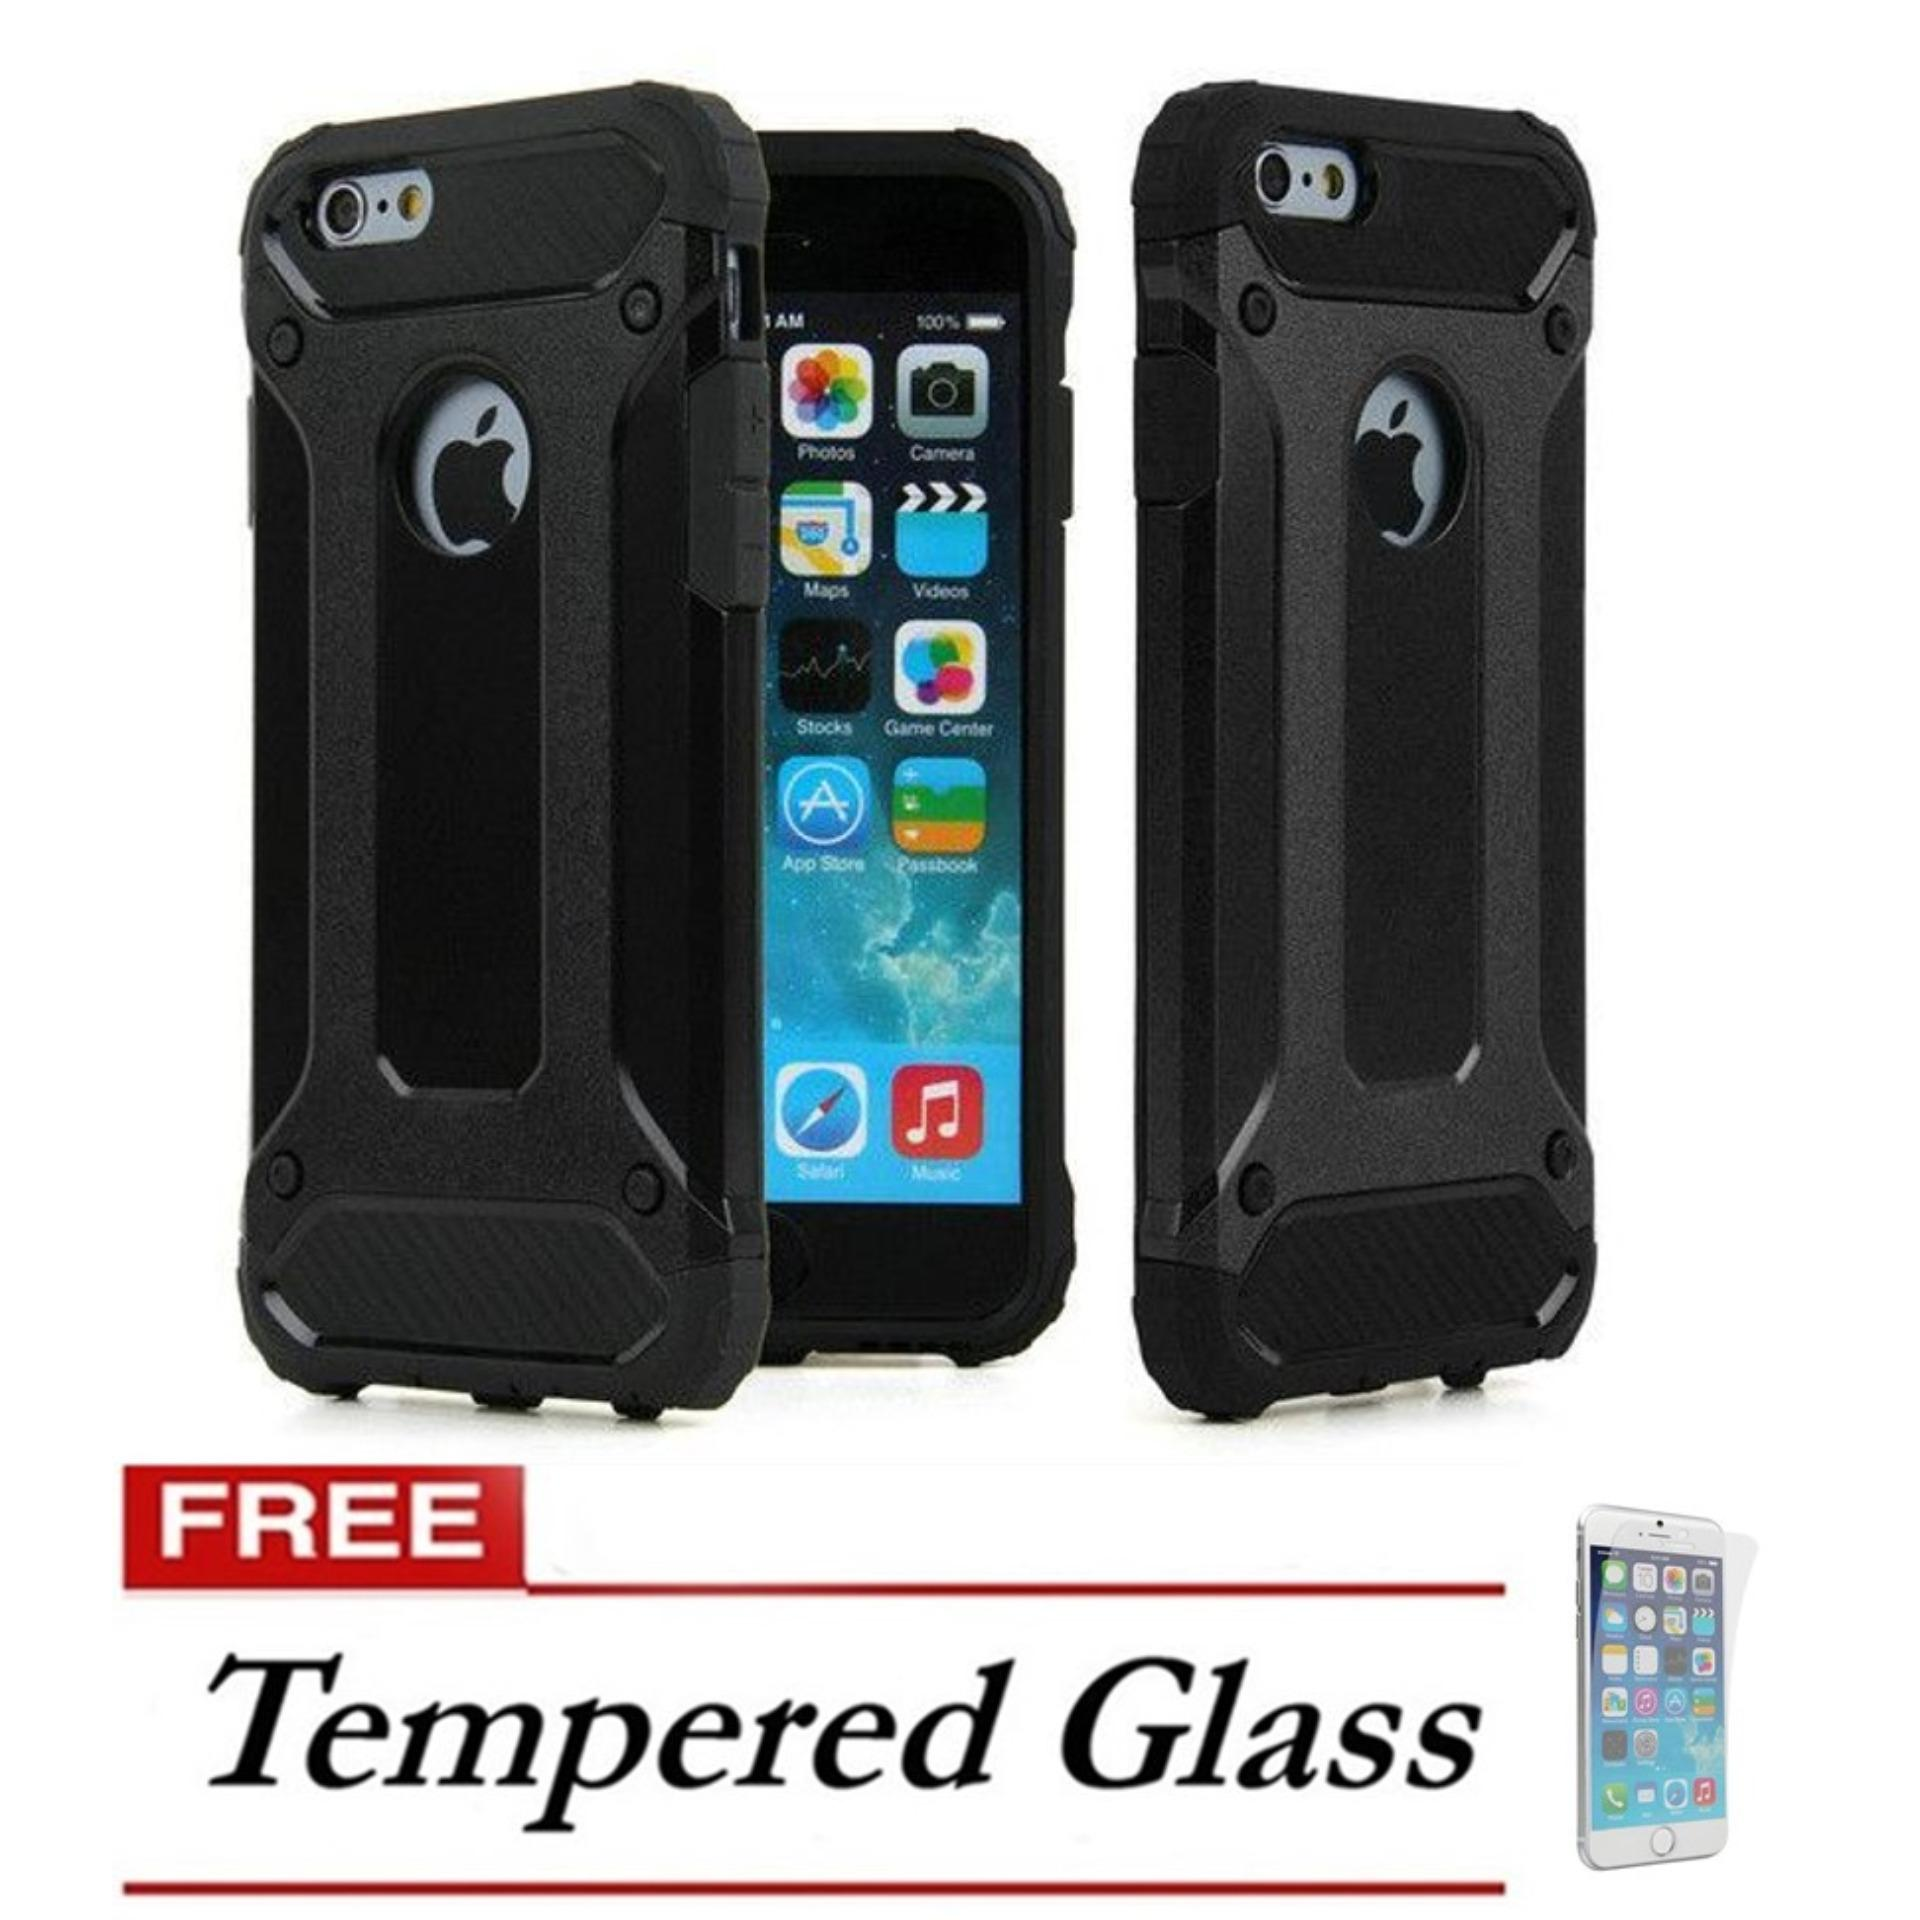 Case Hard Cover Robot Shockproof Armor For Iphone 6 Plus - Black FREE Tempered Glass